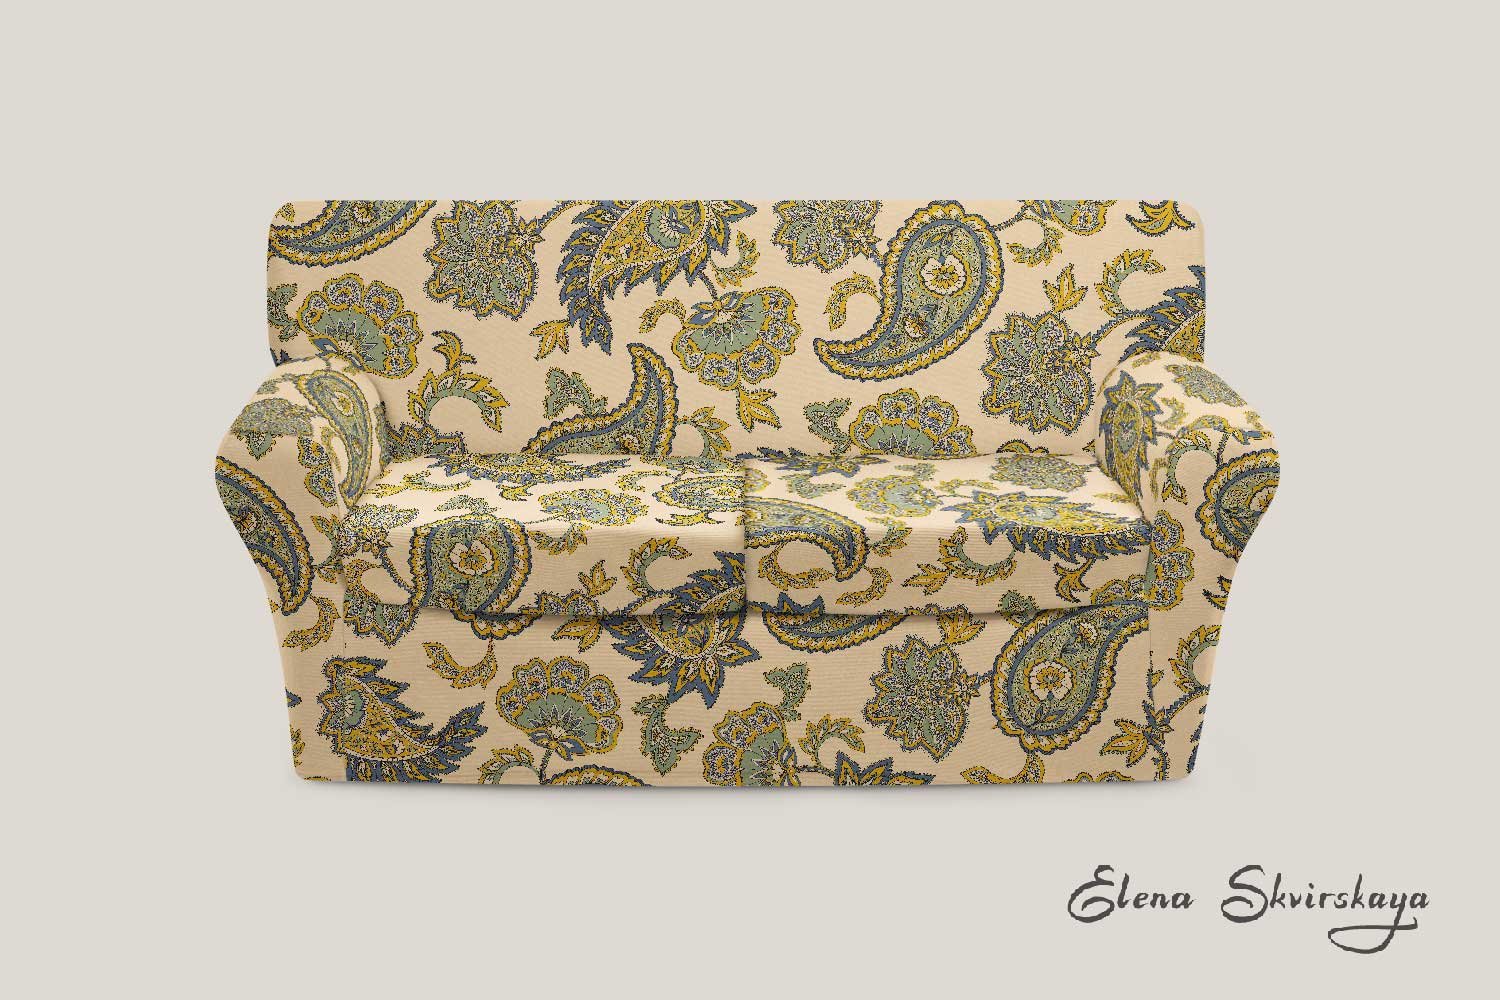 paisley design on a sofa, mock up, global inspired home